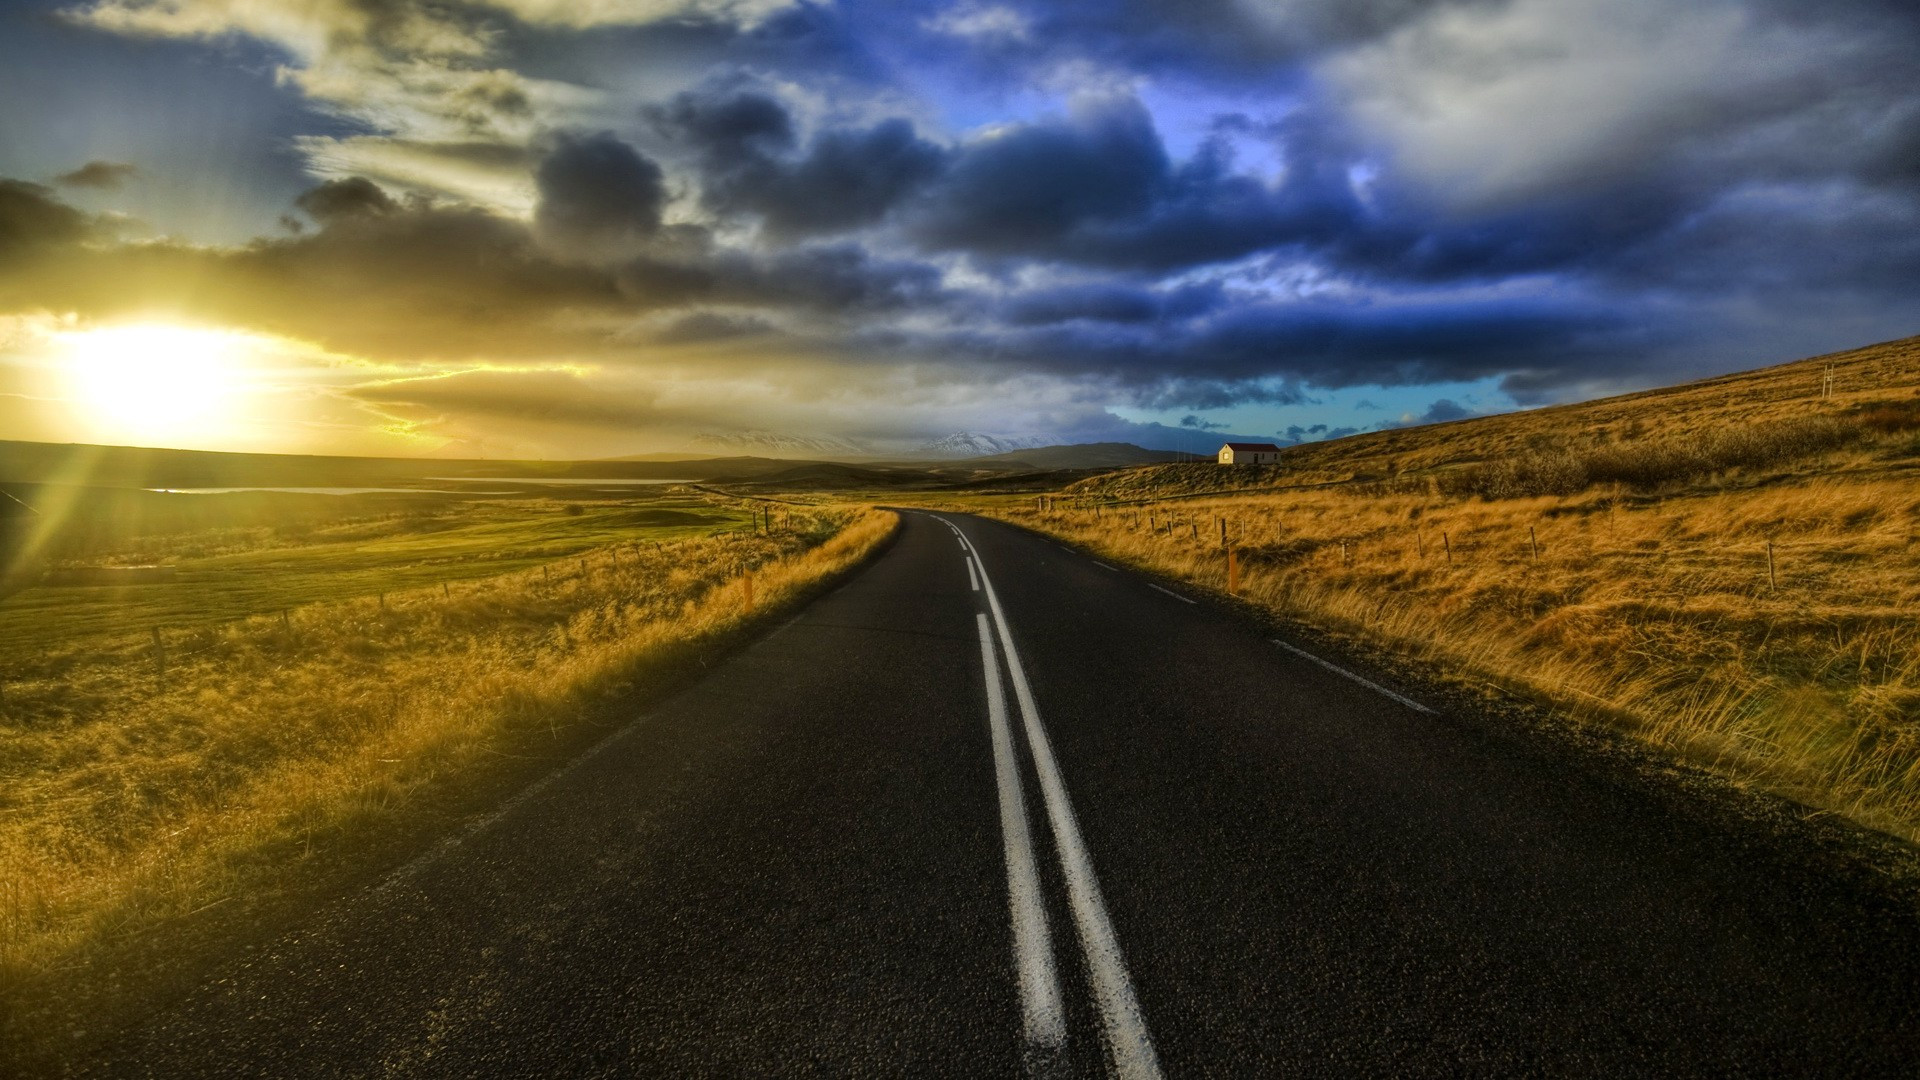 Road At Sunset Wallpaper